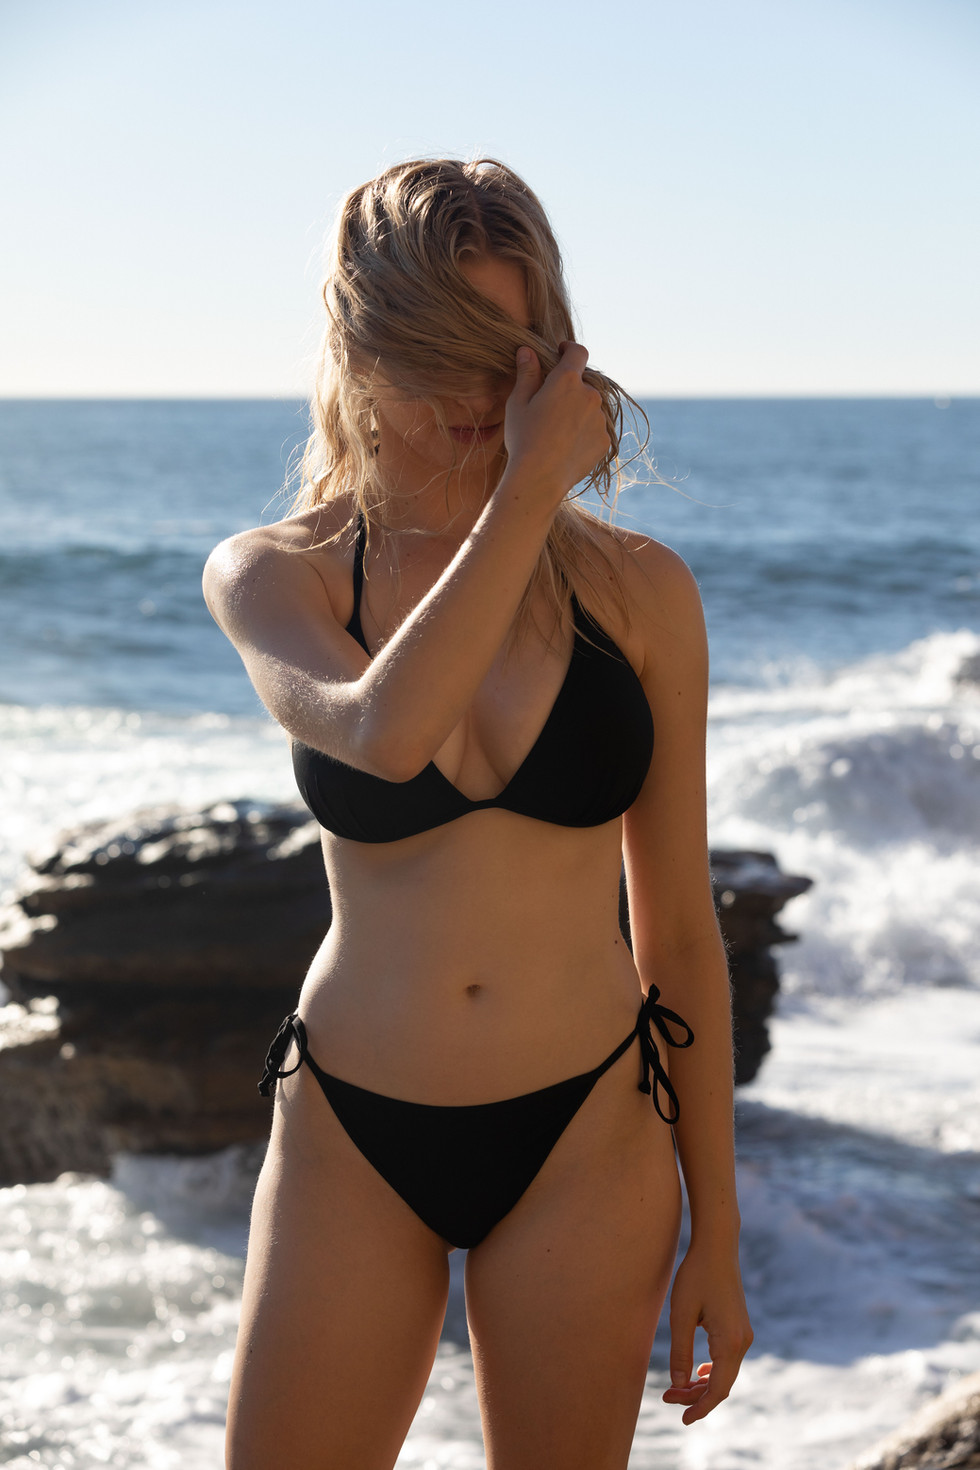 Mel_by_CoogeePhotography-IMGL1452-Edit_8